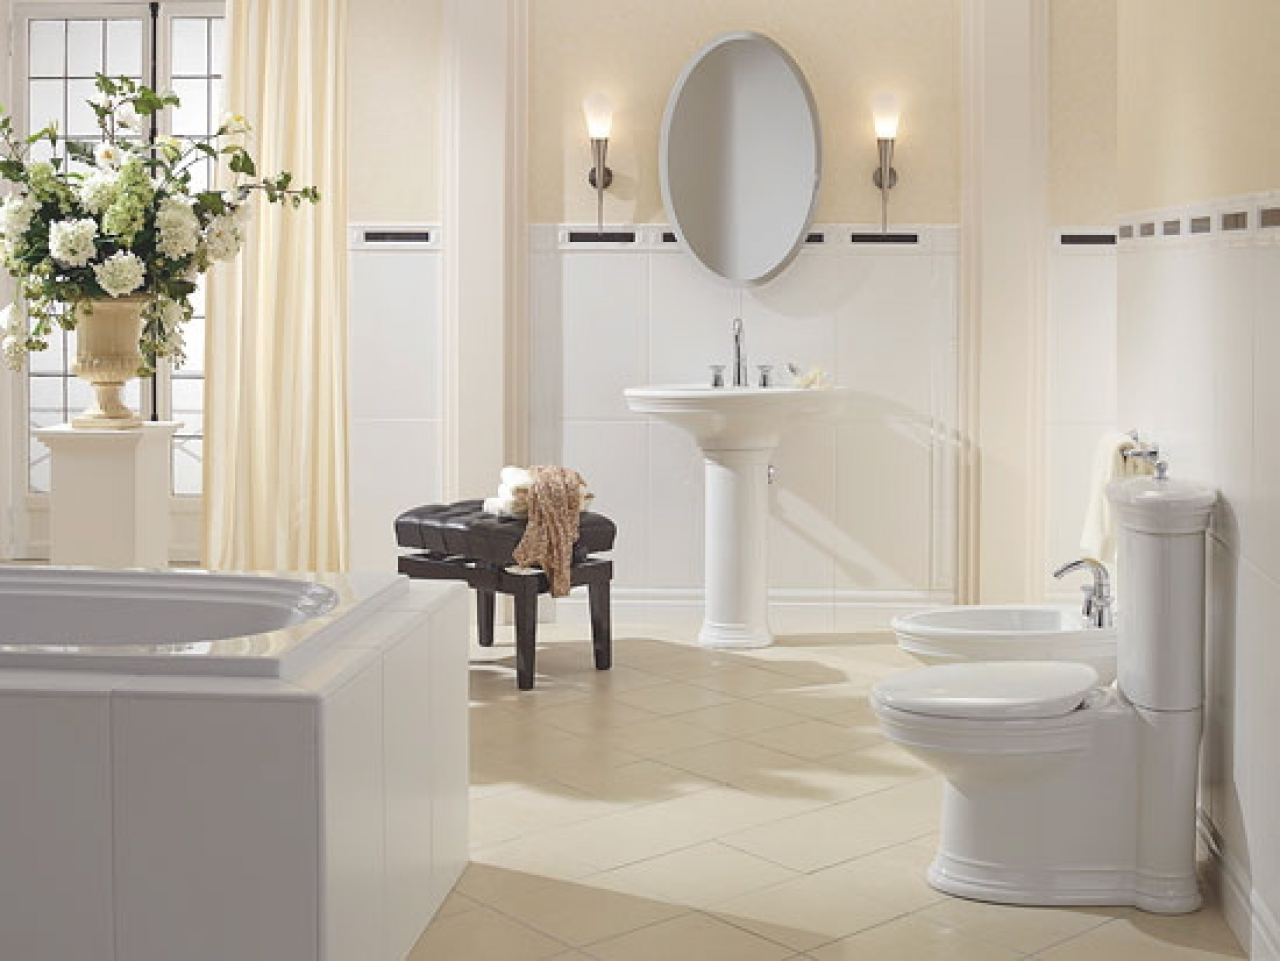 Elegant bathrooms uk house decor ideas for Bathroom decor ideas uk